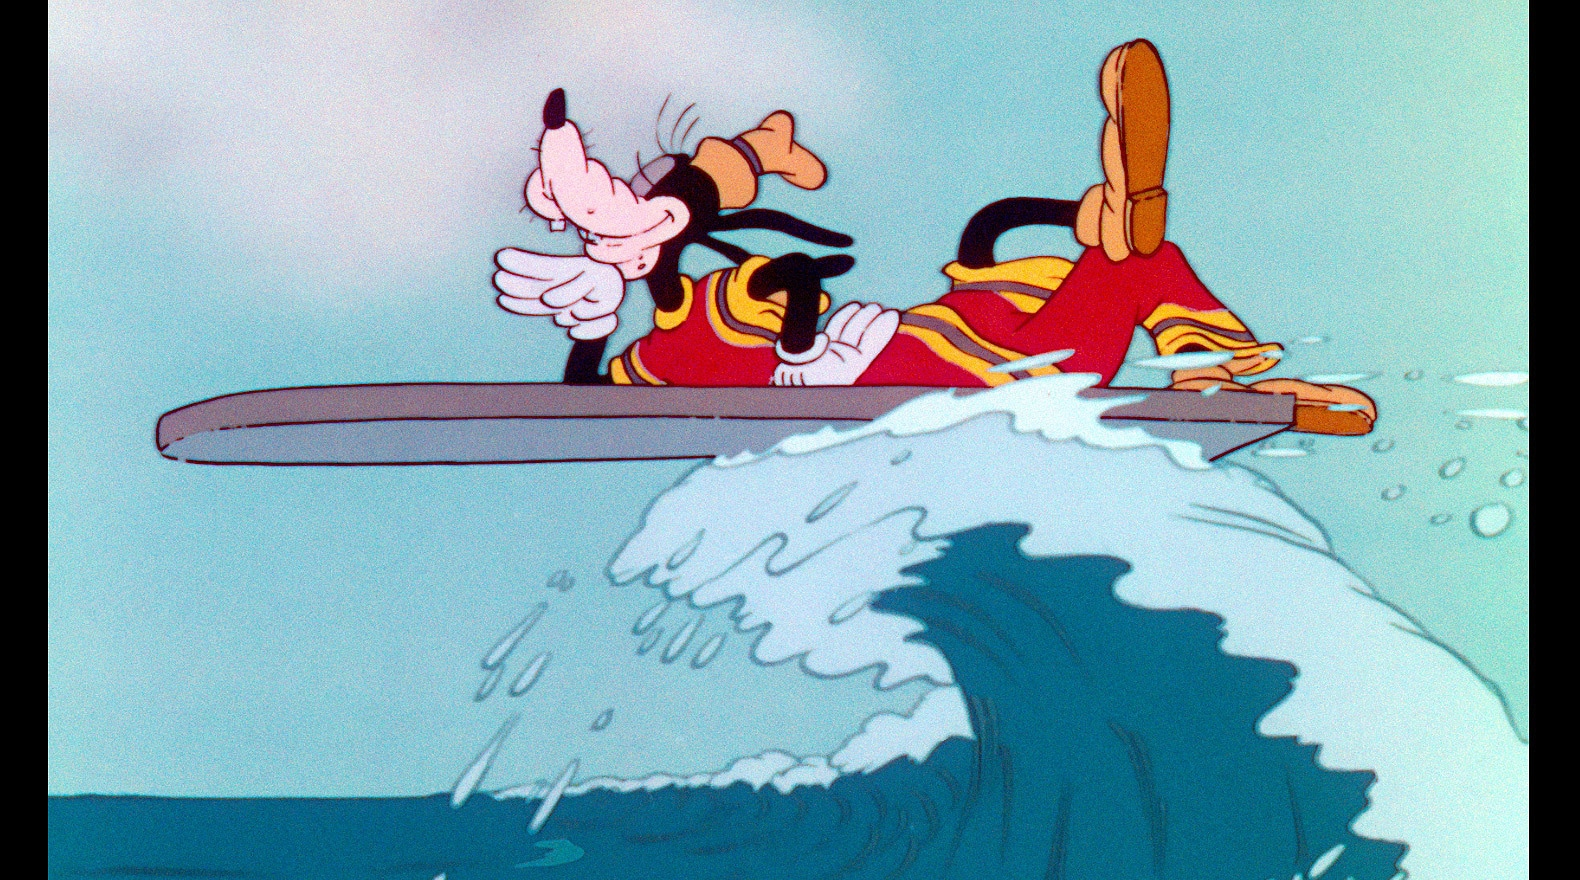 Goofy knows that sometimes you just have to ride the wave and see where you get.